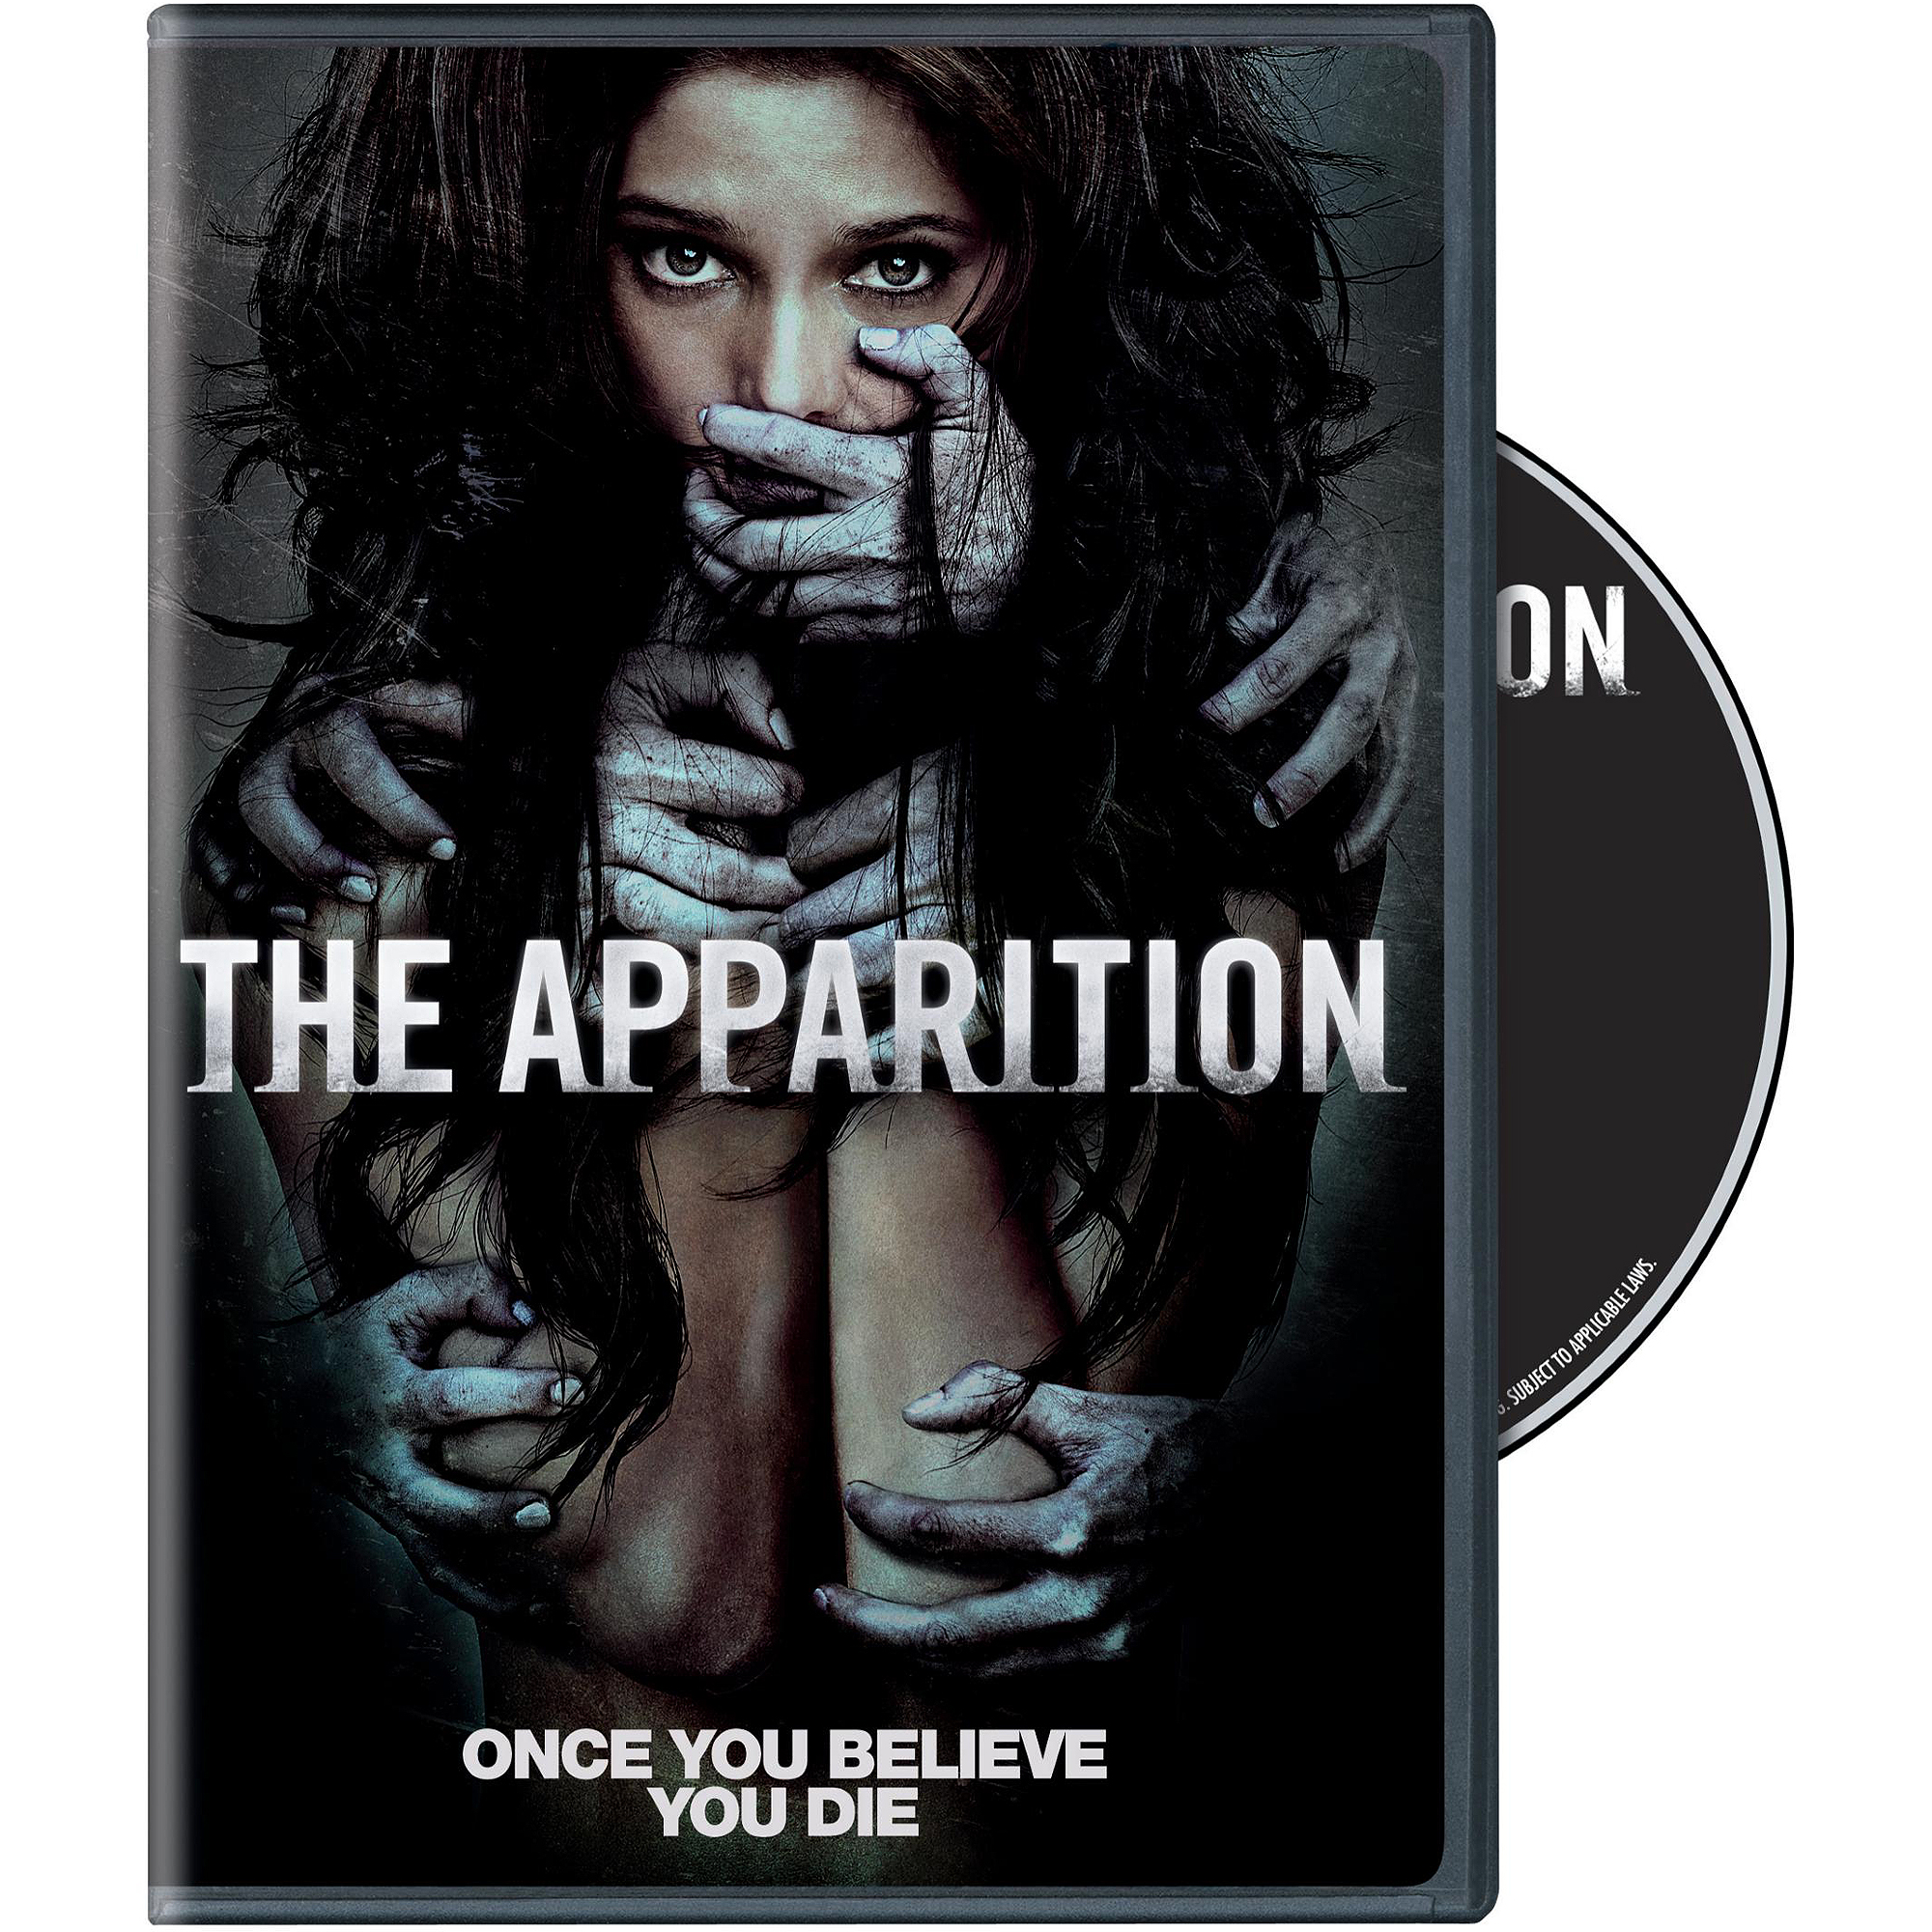 The Apparition (DVD + UltraViolet) (With INSTAWATCH) (Widescreen)